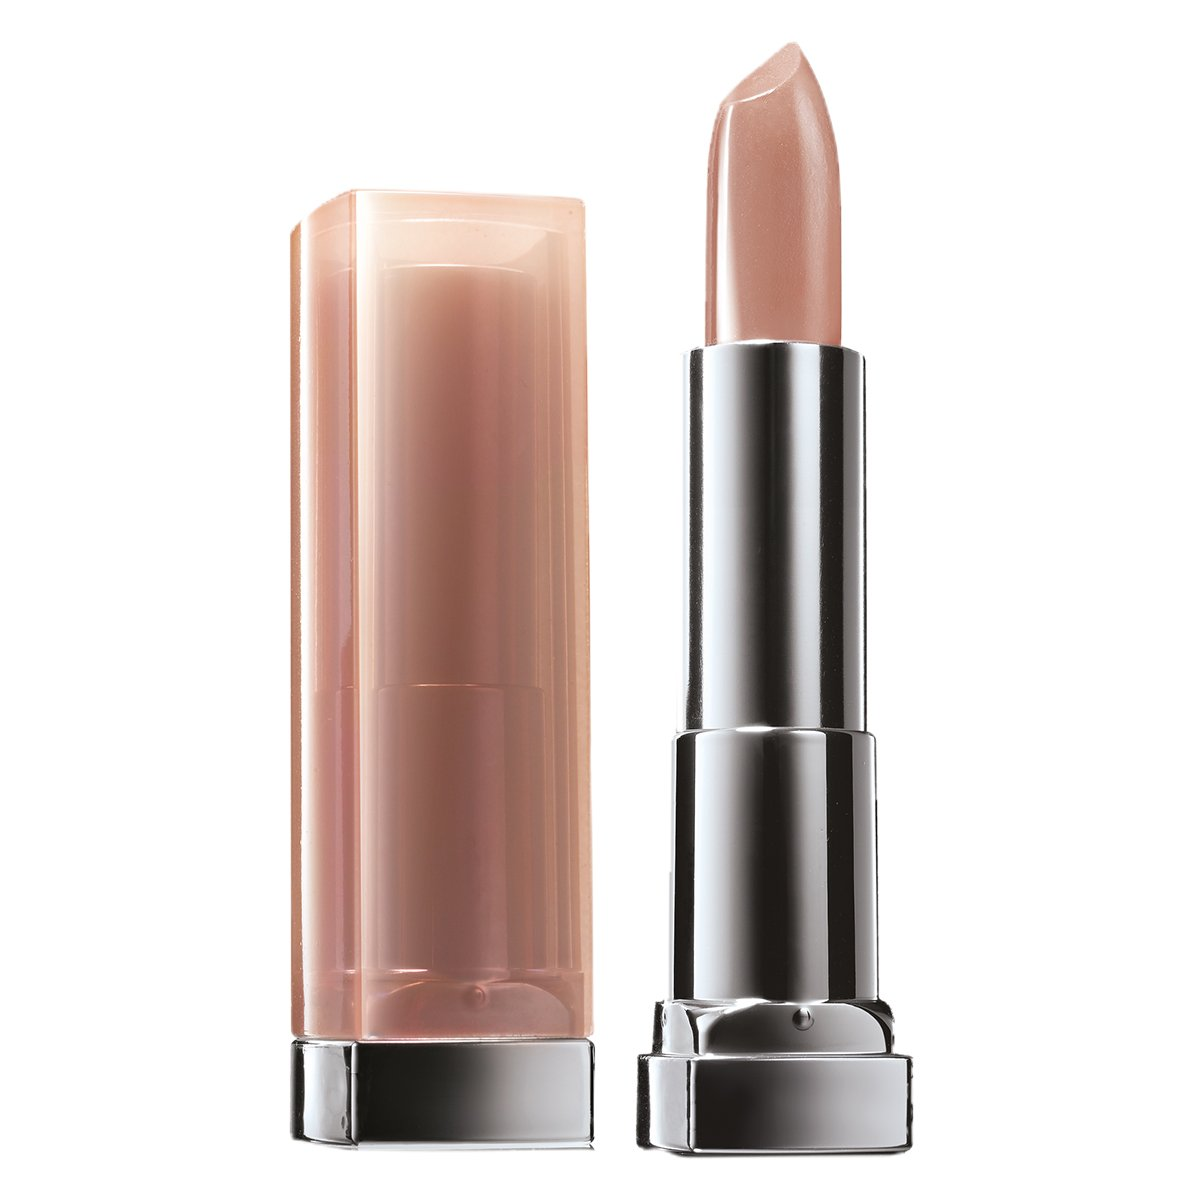 maybelline color sensational lipstick 710 sultry sand amazoncouk beauty - Gemey Maybelline Color Sensational